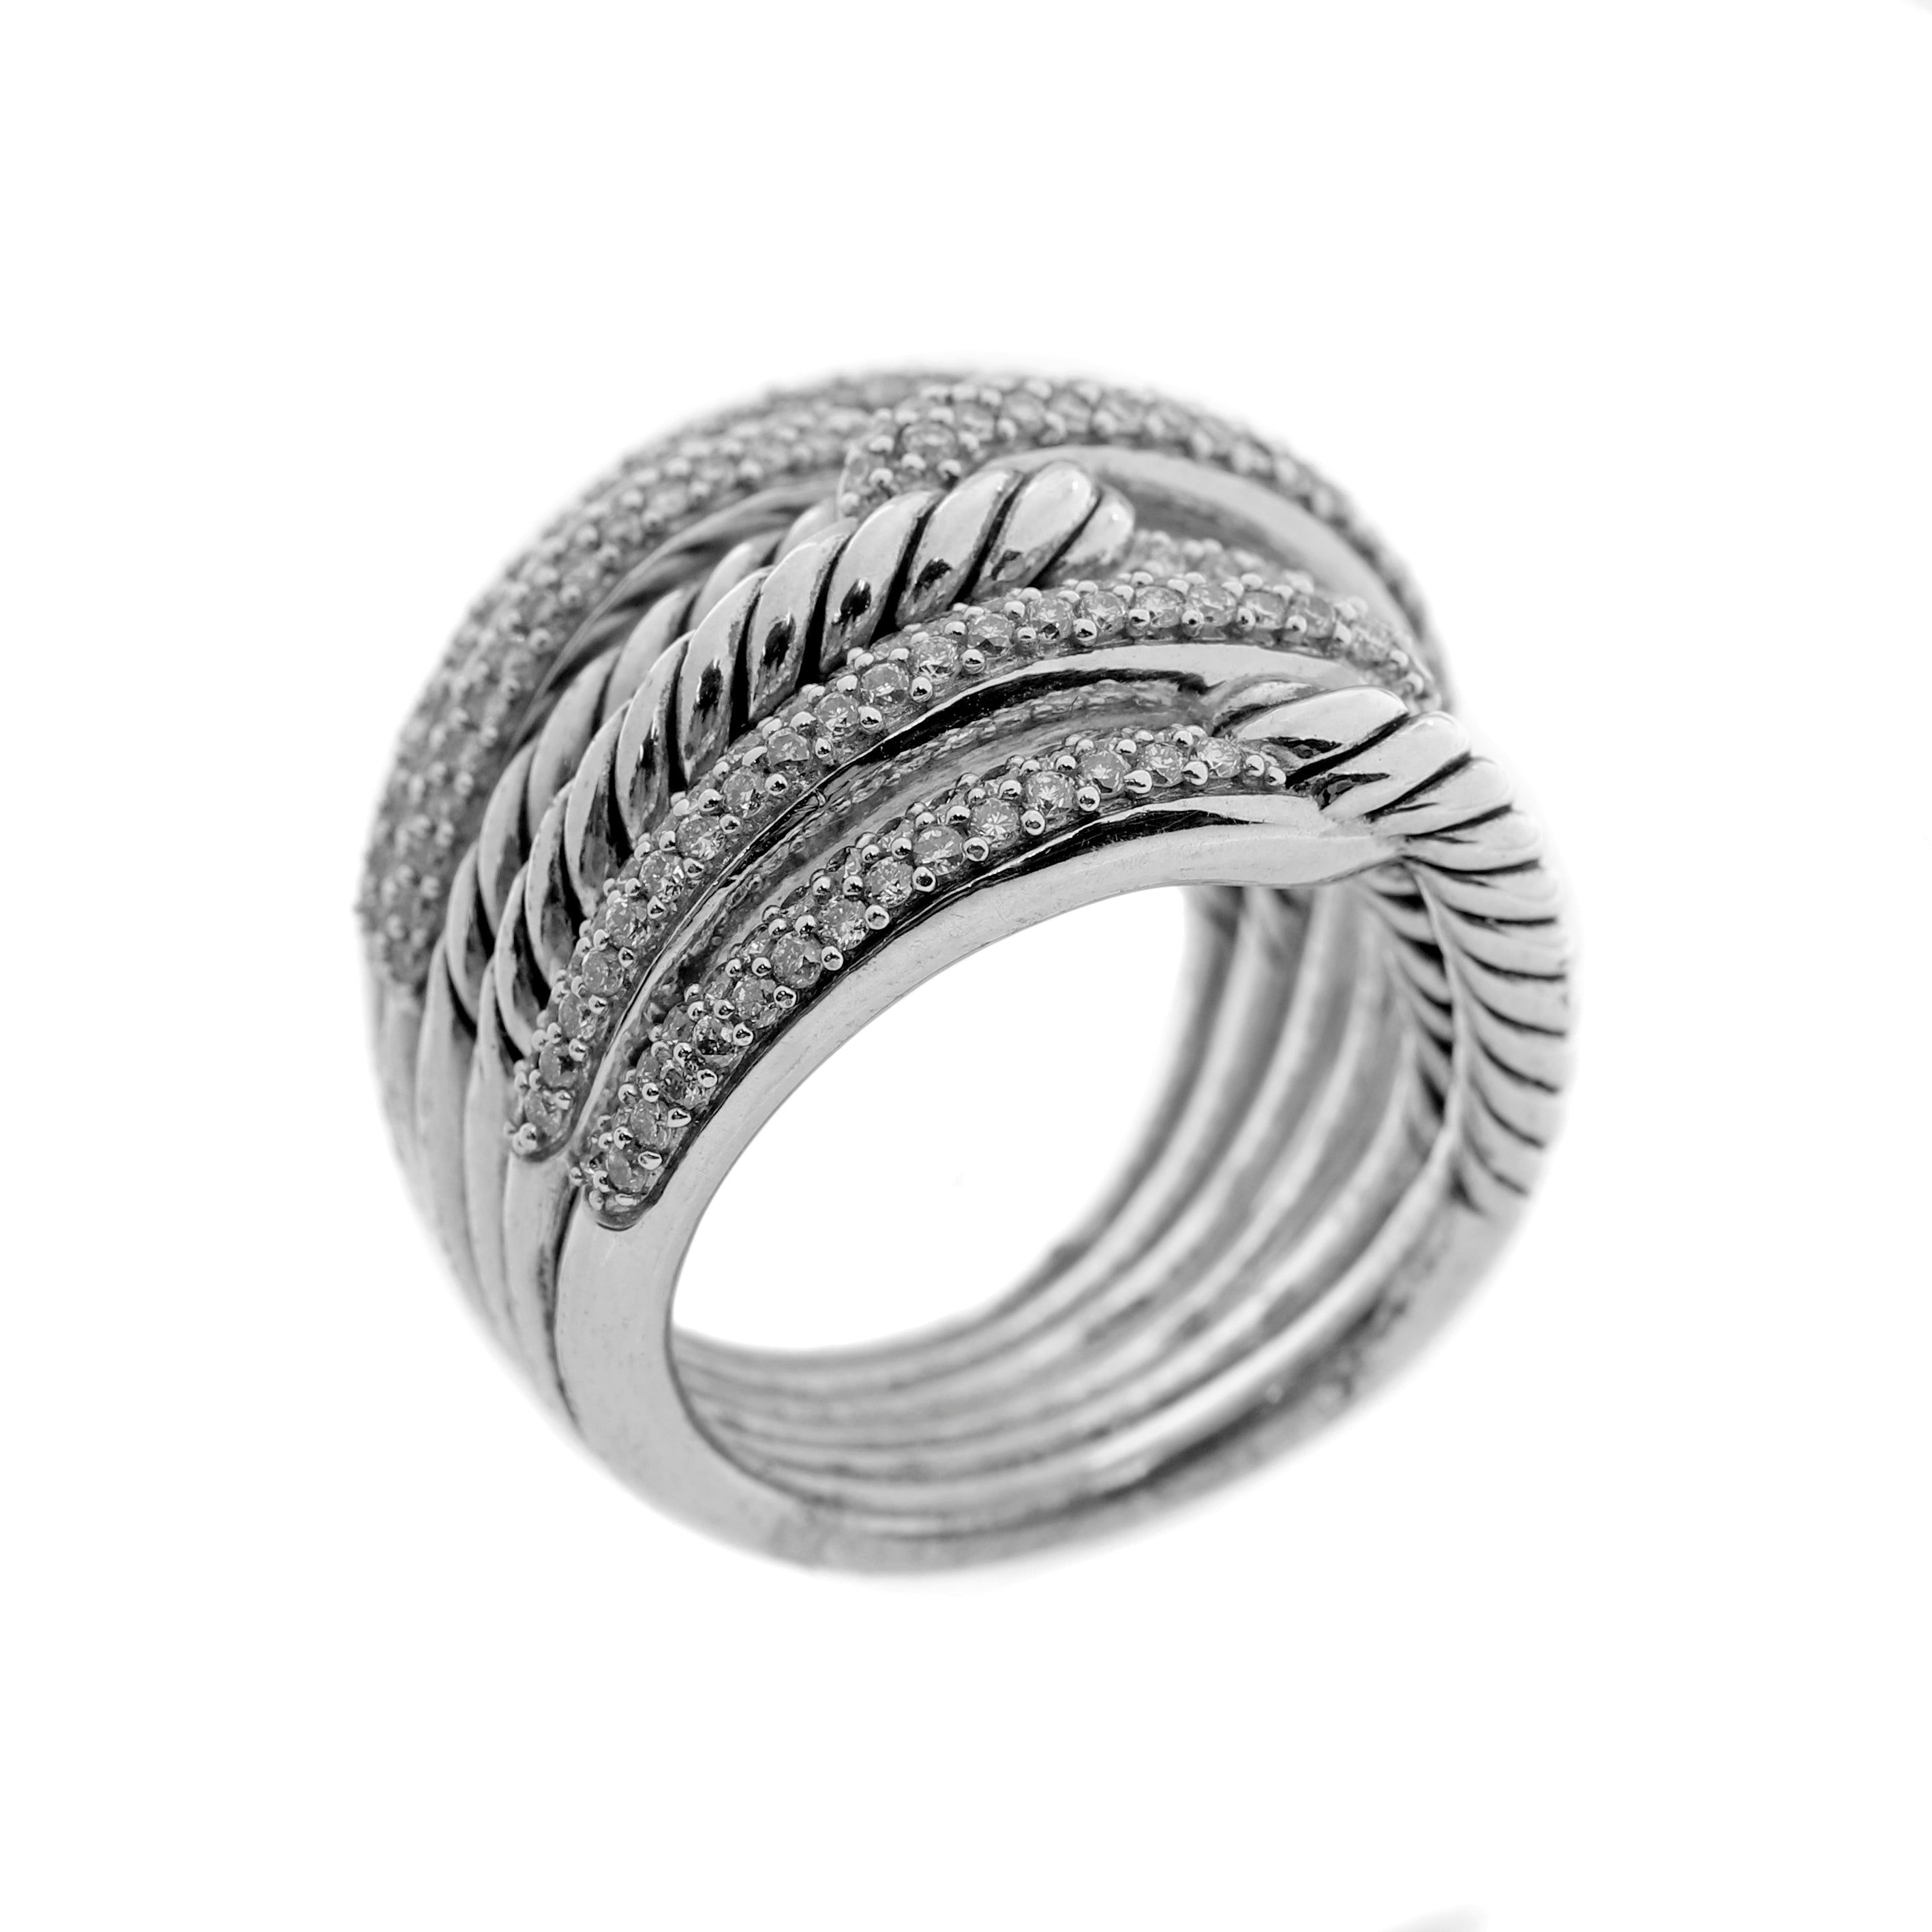 David Yurman Diamond Knot Ring